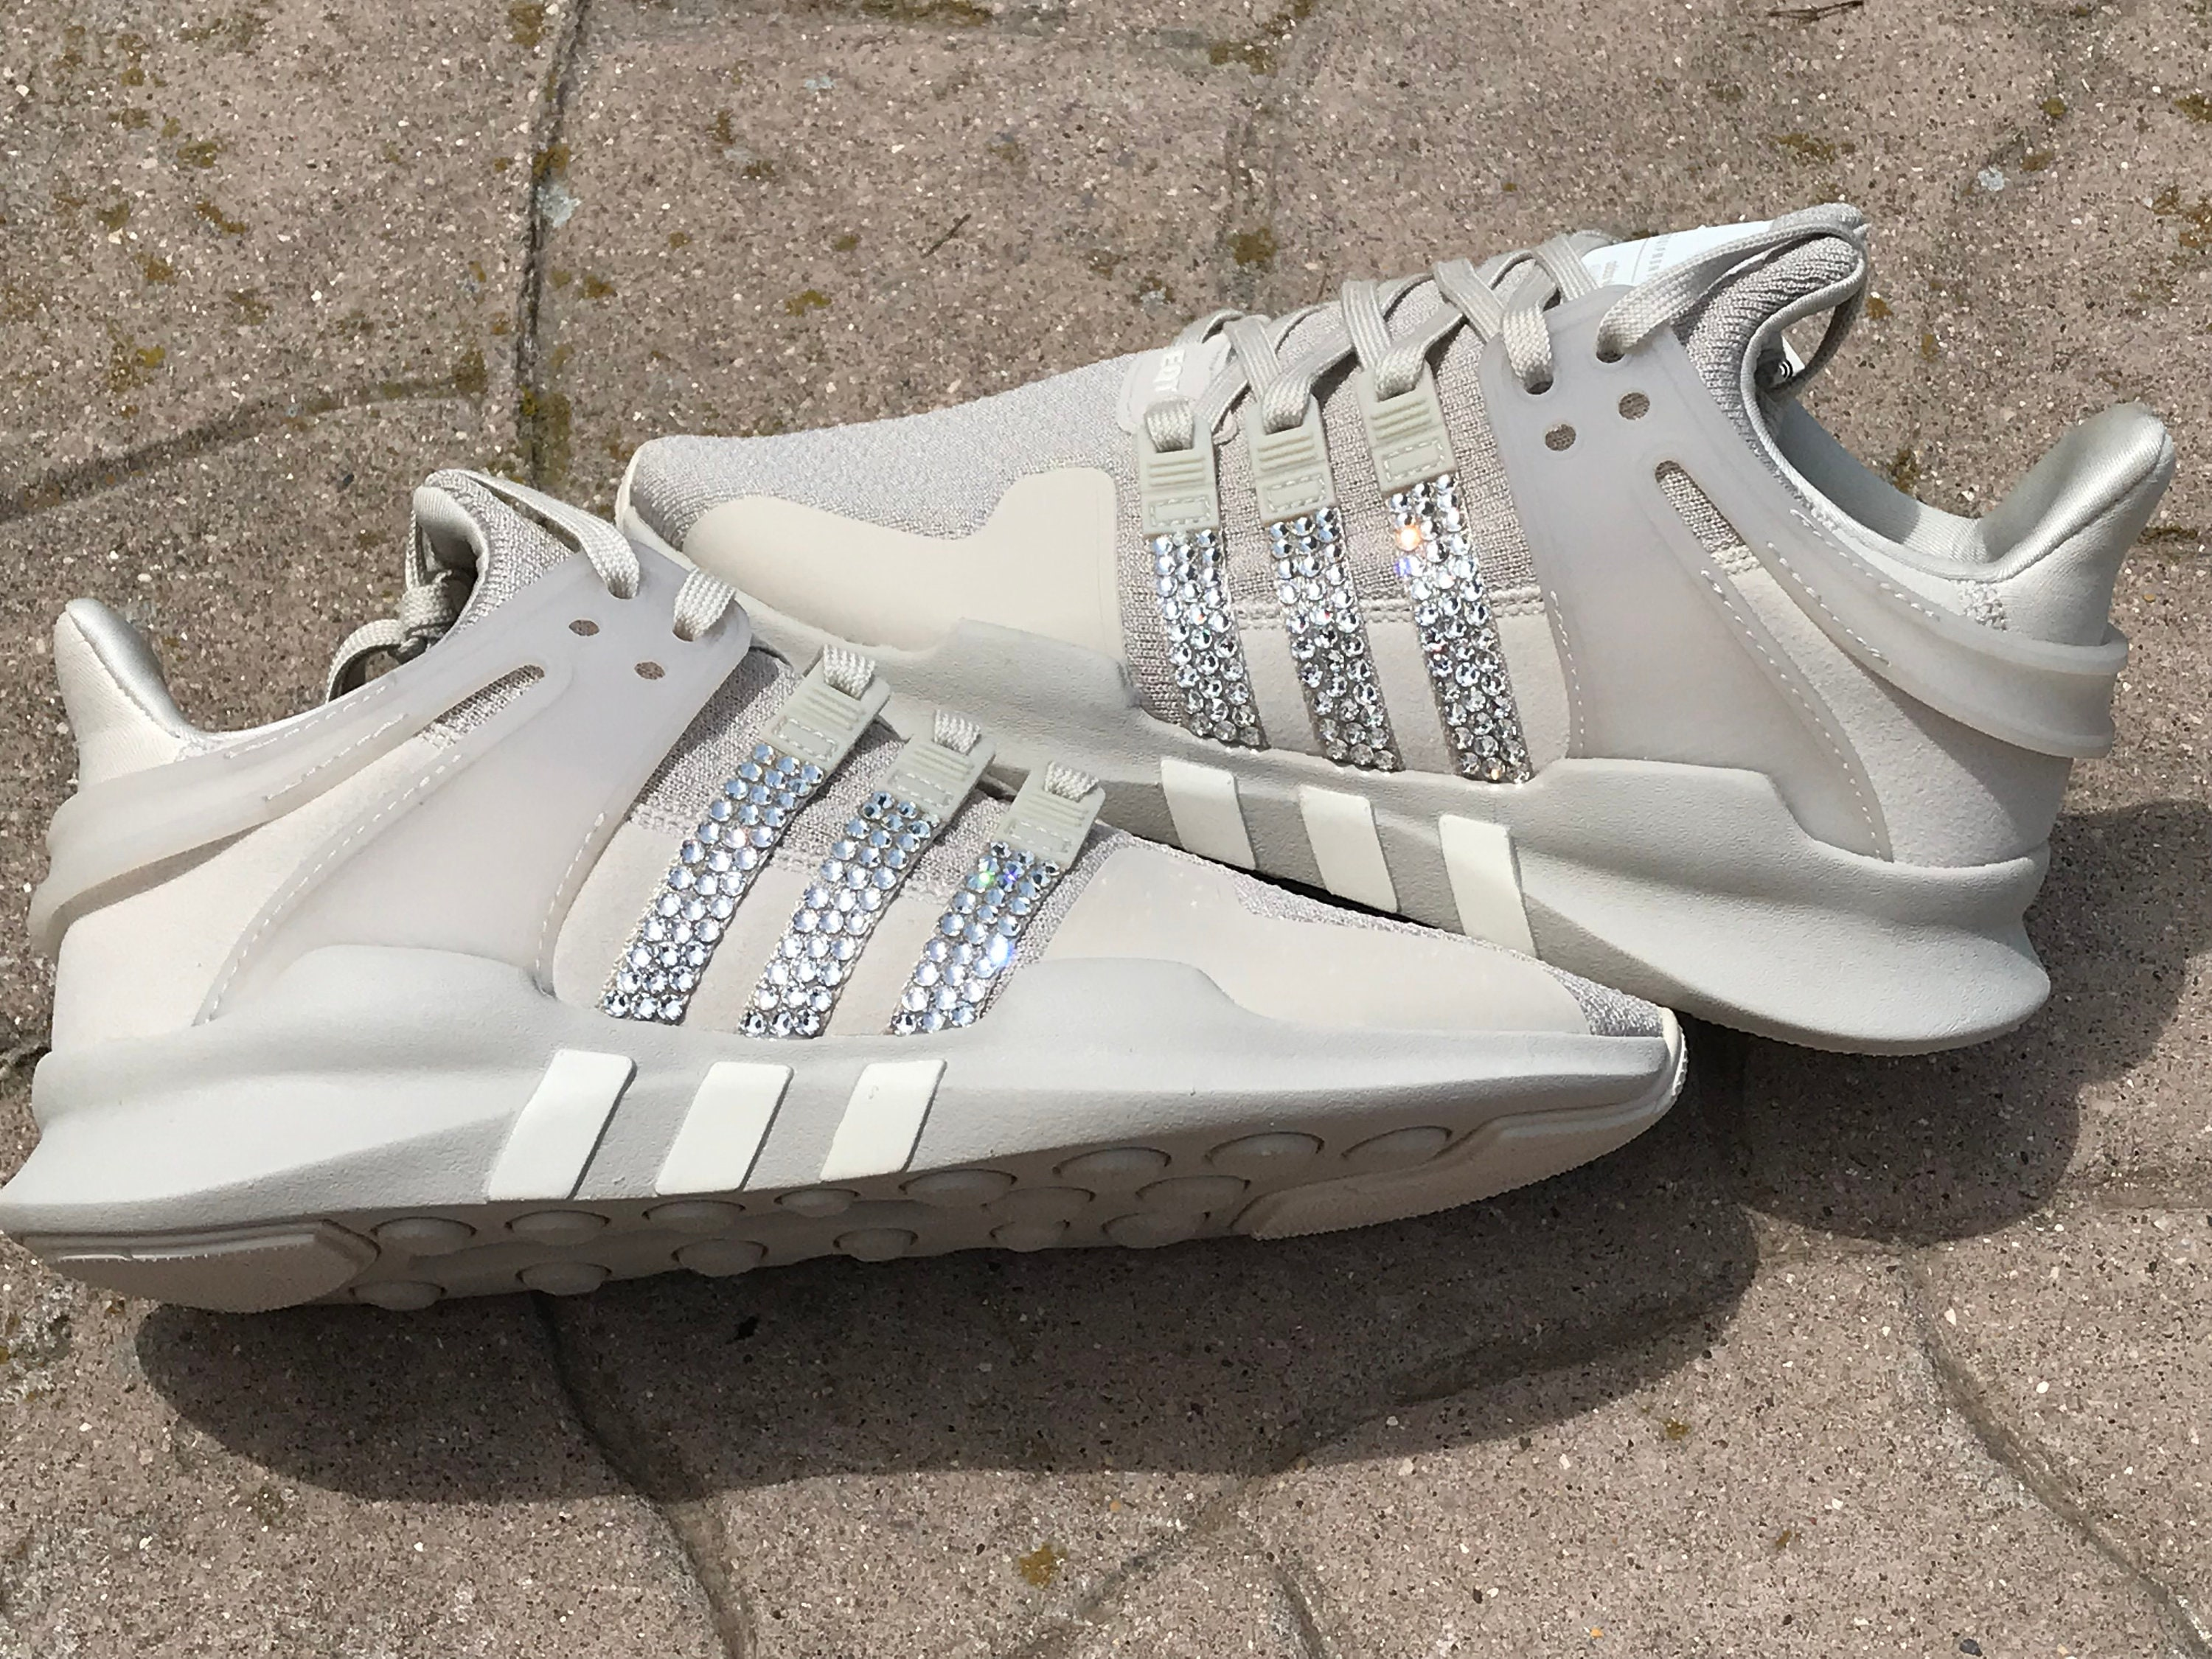 5fe64f0b26dc3 Sale! New Bling Adidas Originals with Swarovski Crystals * Women's  Originals EQT Racing ADV Runners Casual Shoes *clear brown/off white